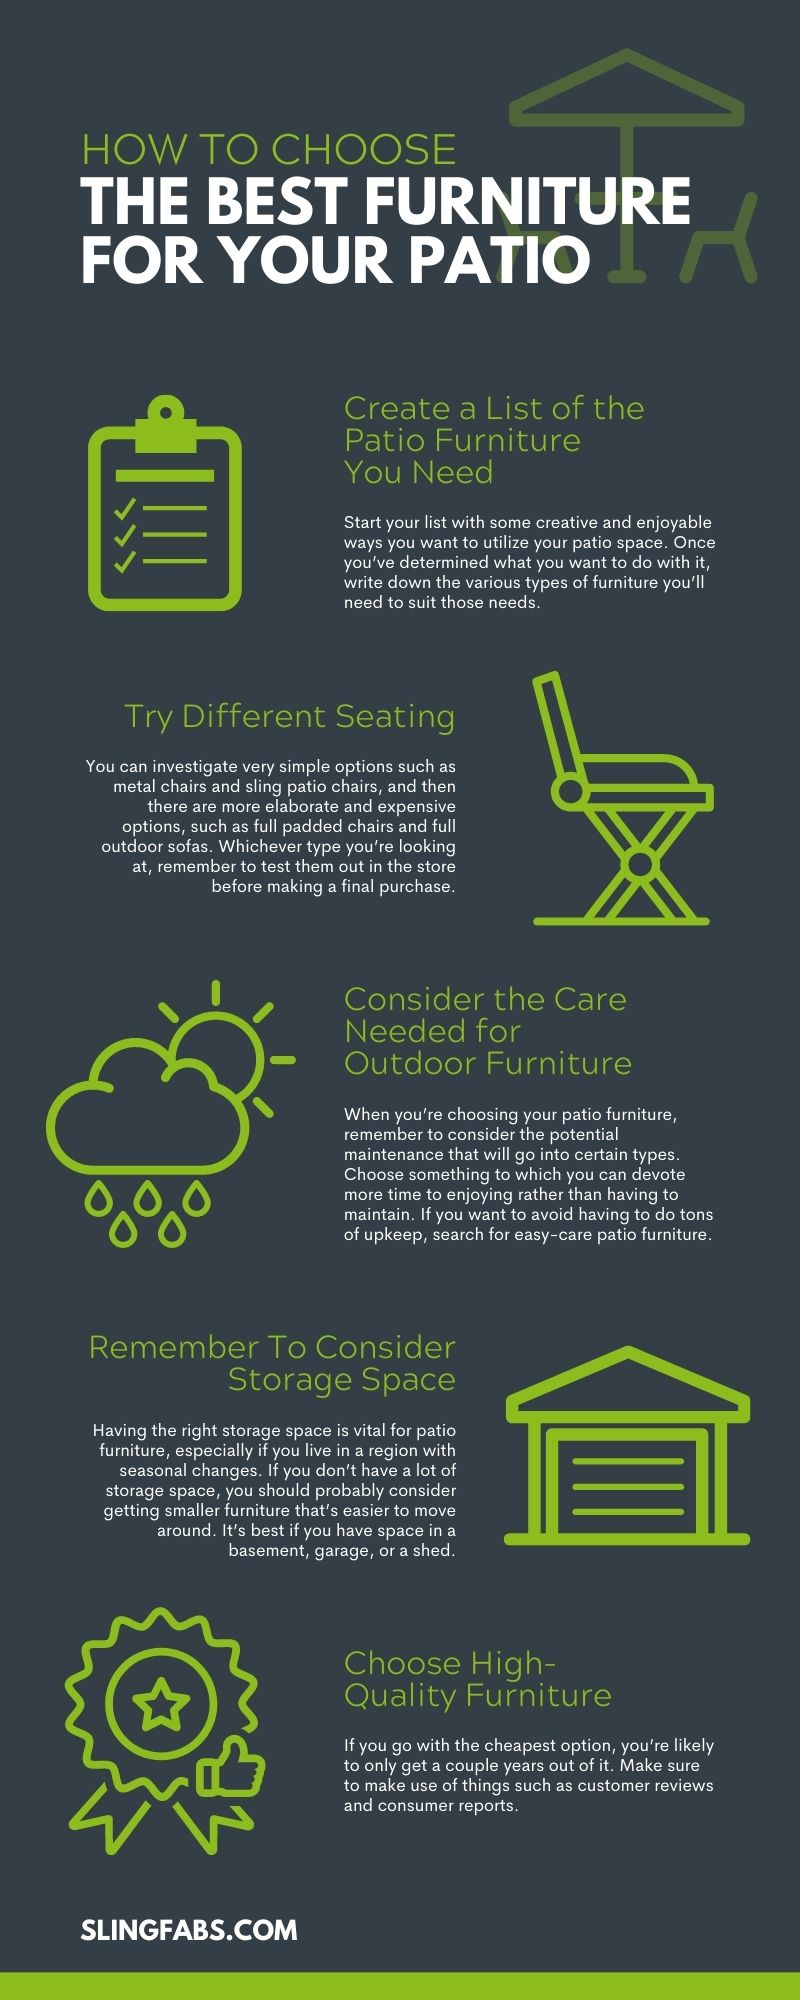 How To Choose the Best Furniture for Your Patio